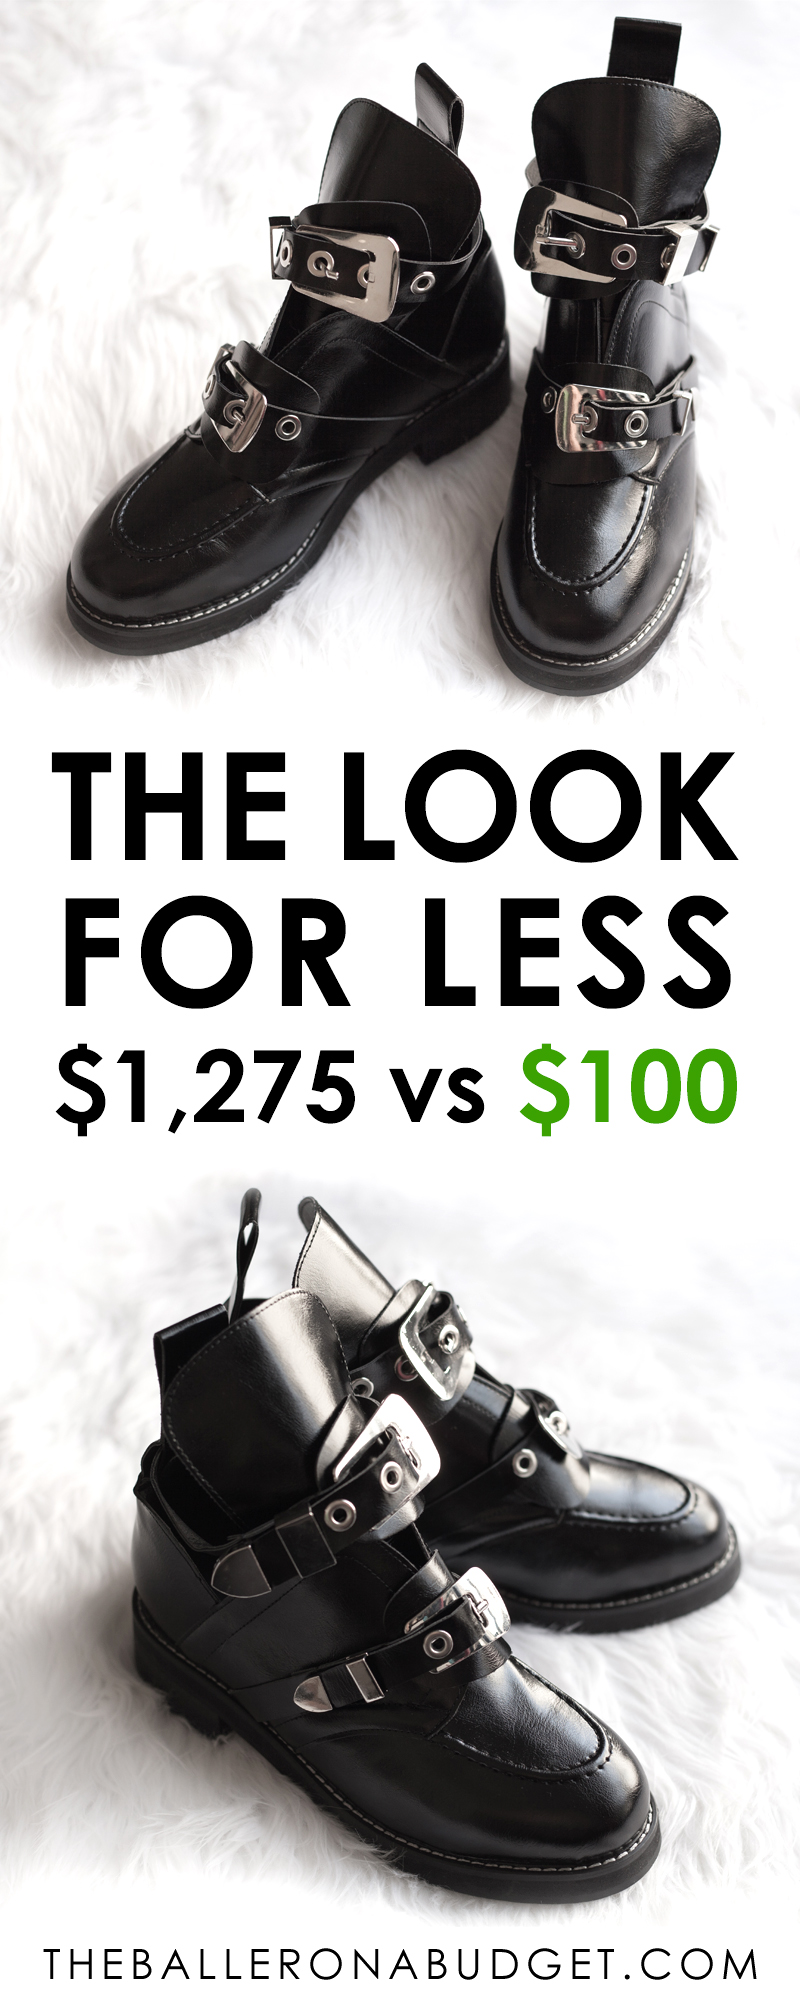 The Balenciaga Ceinture ankle boot costs a whopping $1,275. Here's a pair of genuine leather boots that look similar for just $100. - www.theballeronabudget.com